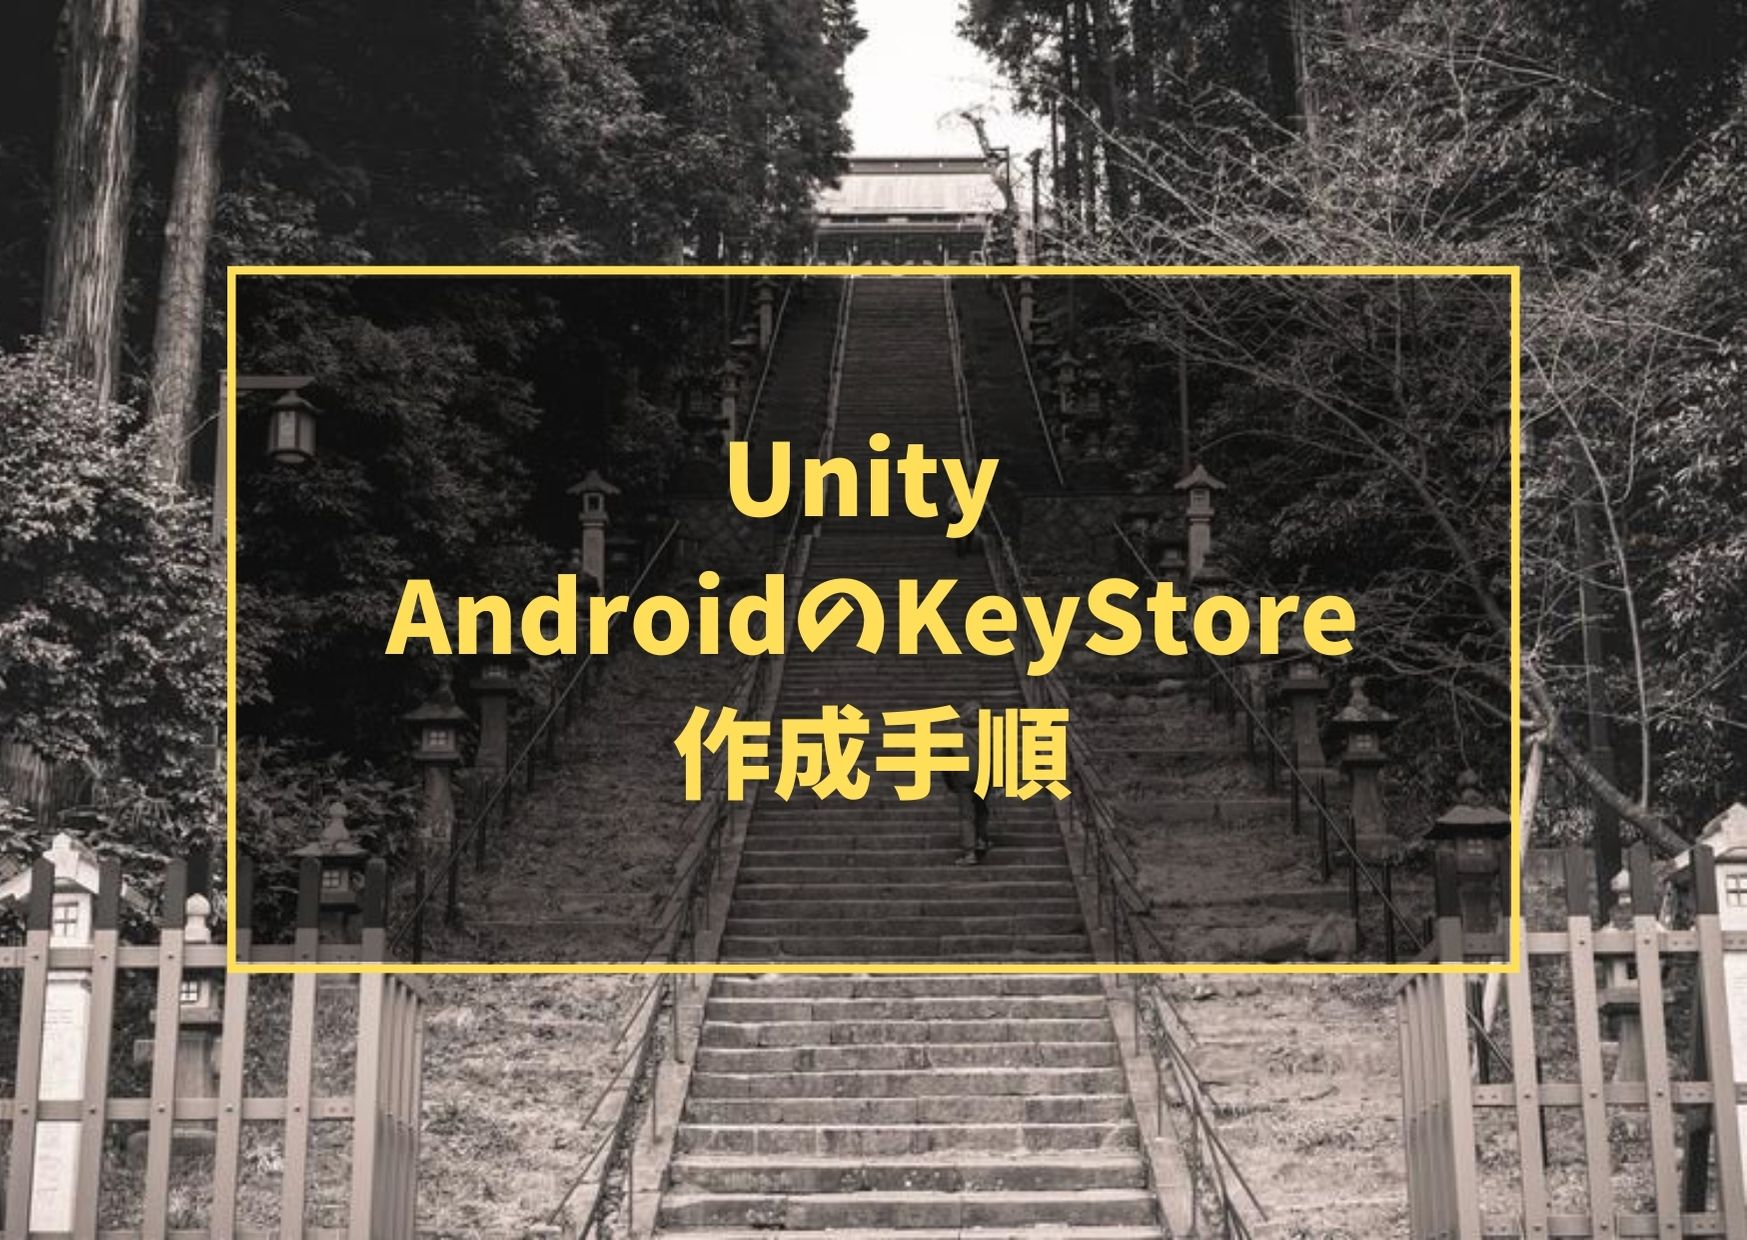 Unity AndroidのKeyStore作成手順